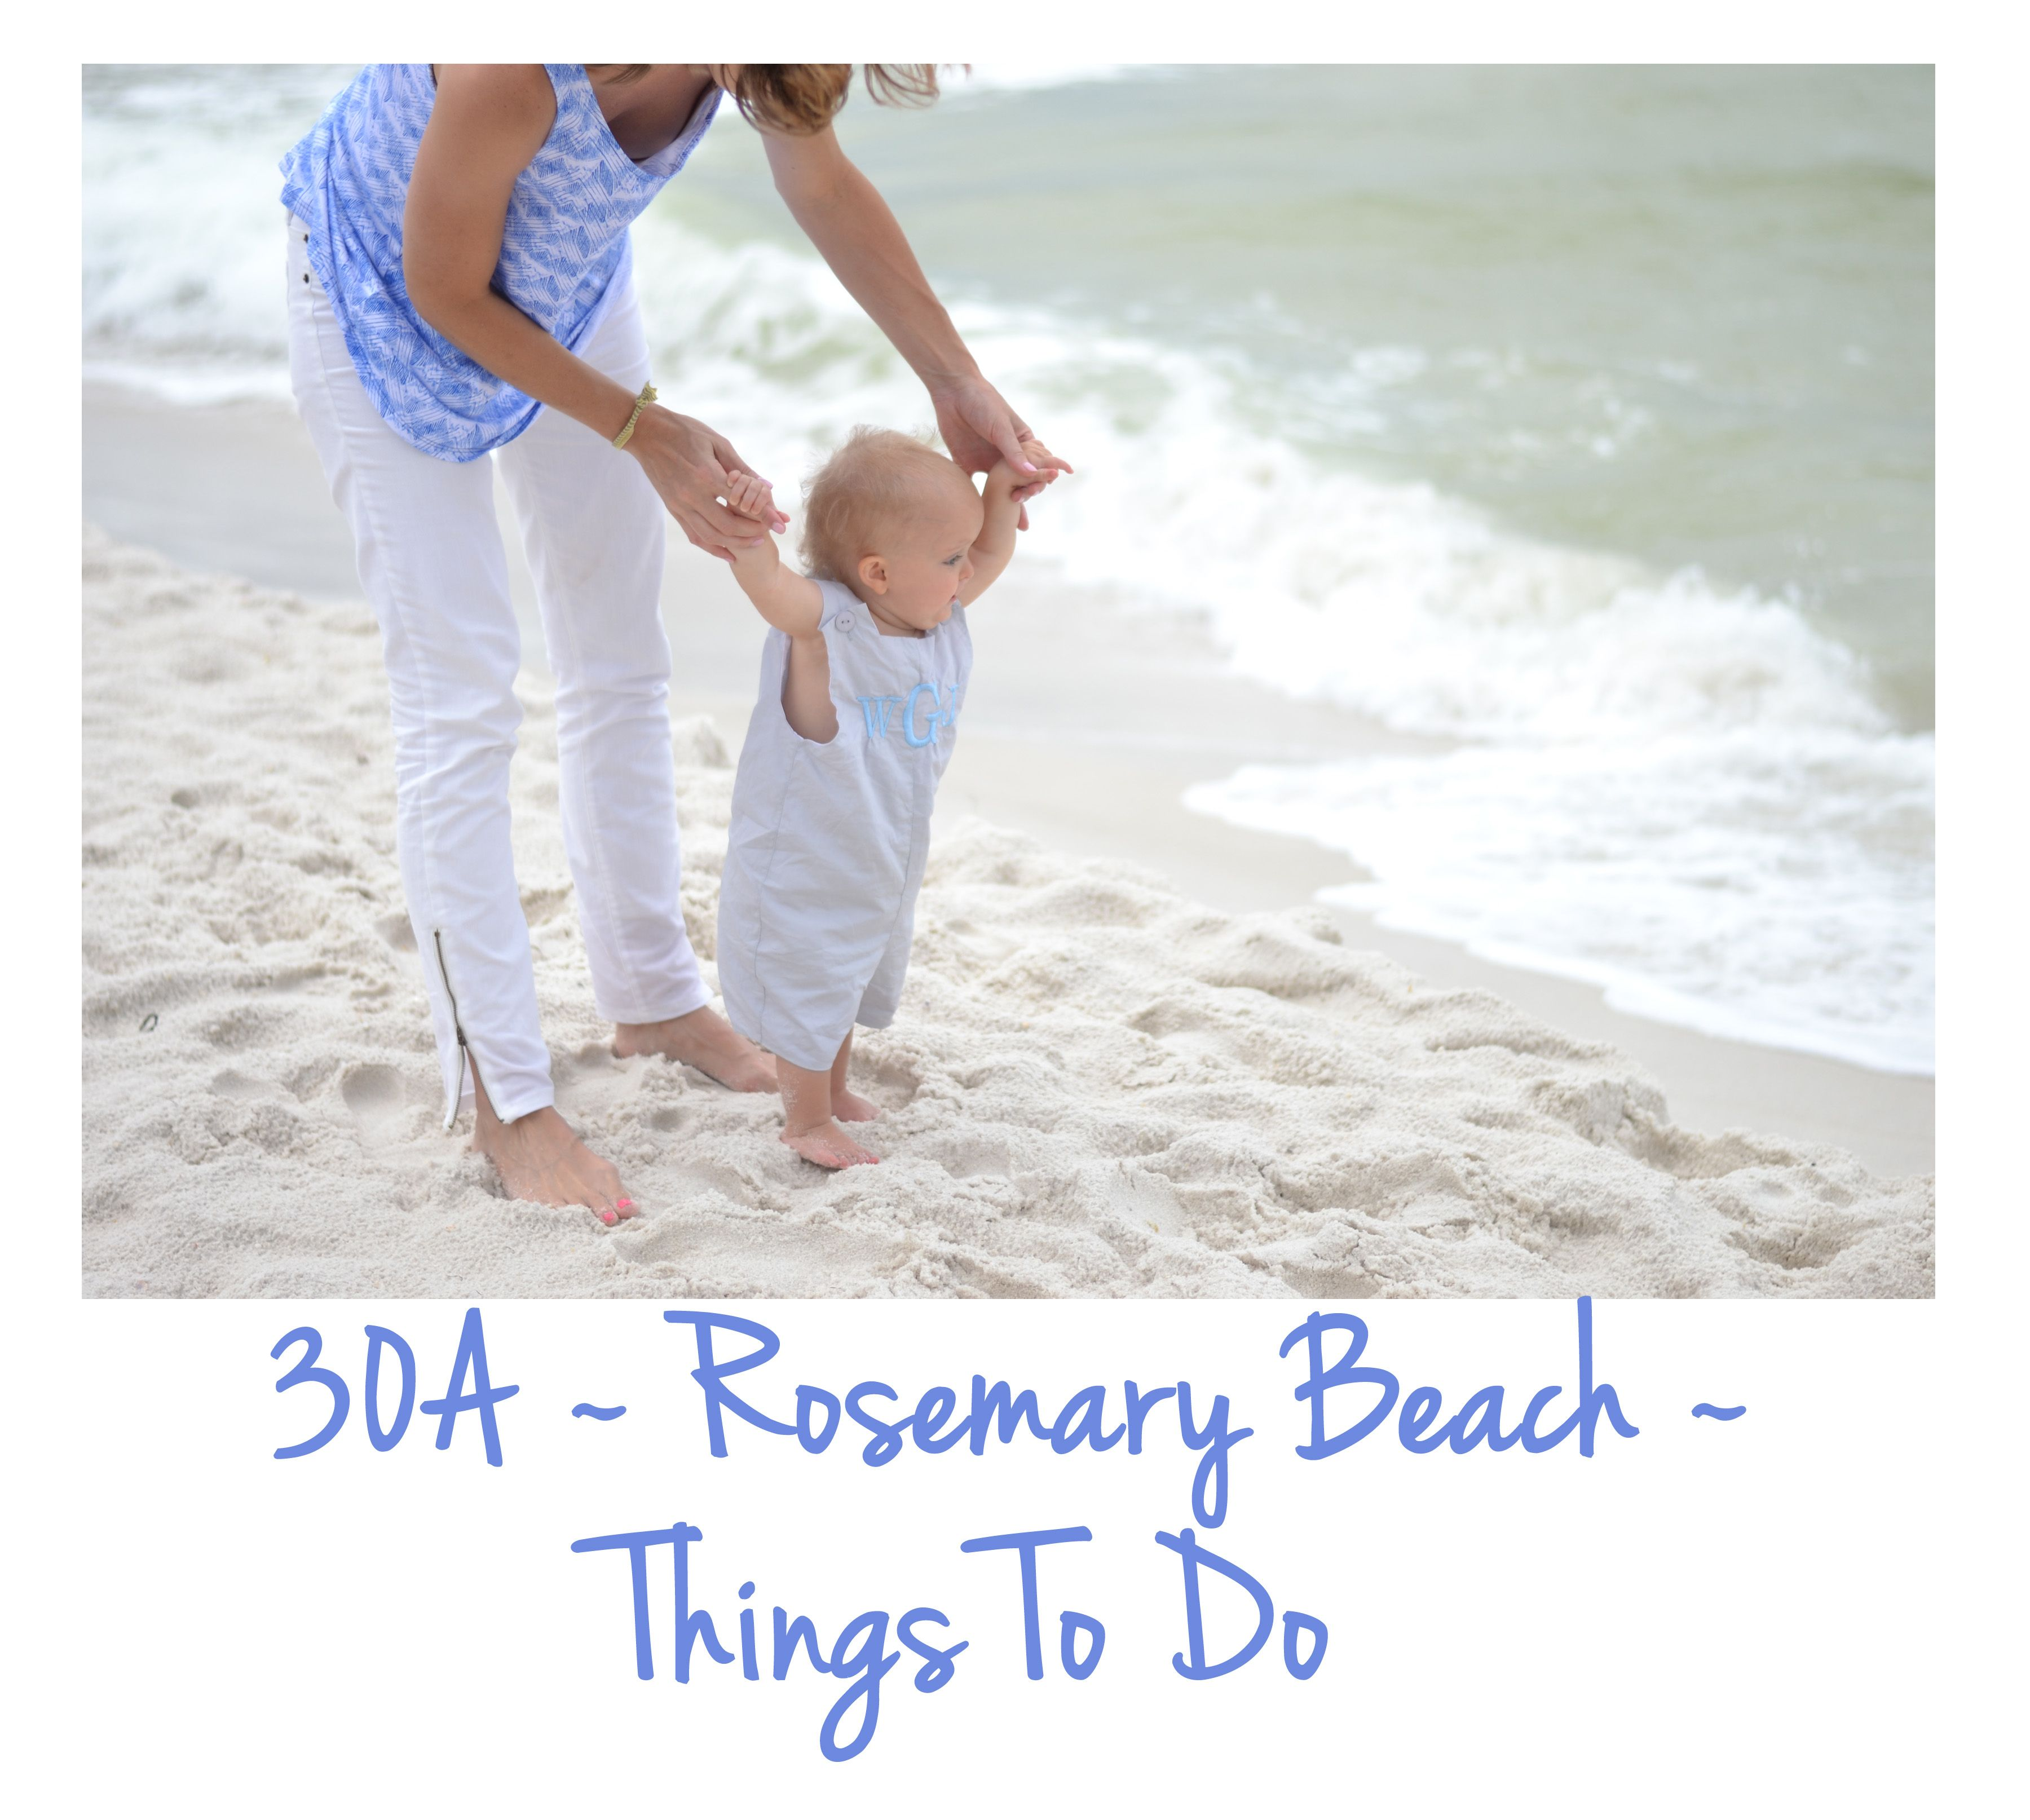 Rosemary Beach 30A Itinerary Things To Do, Restaurants To Eat At ...